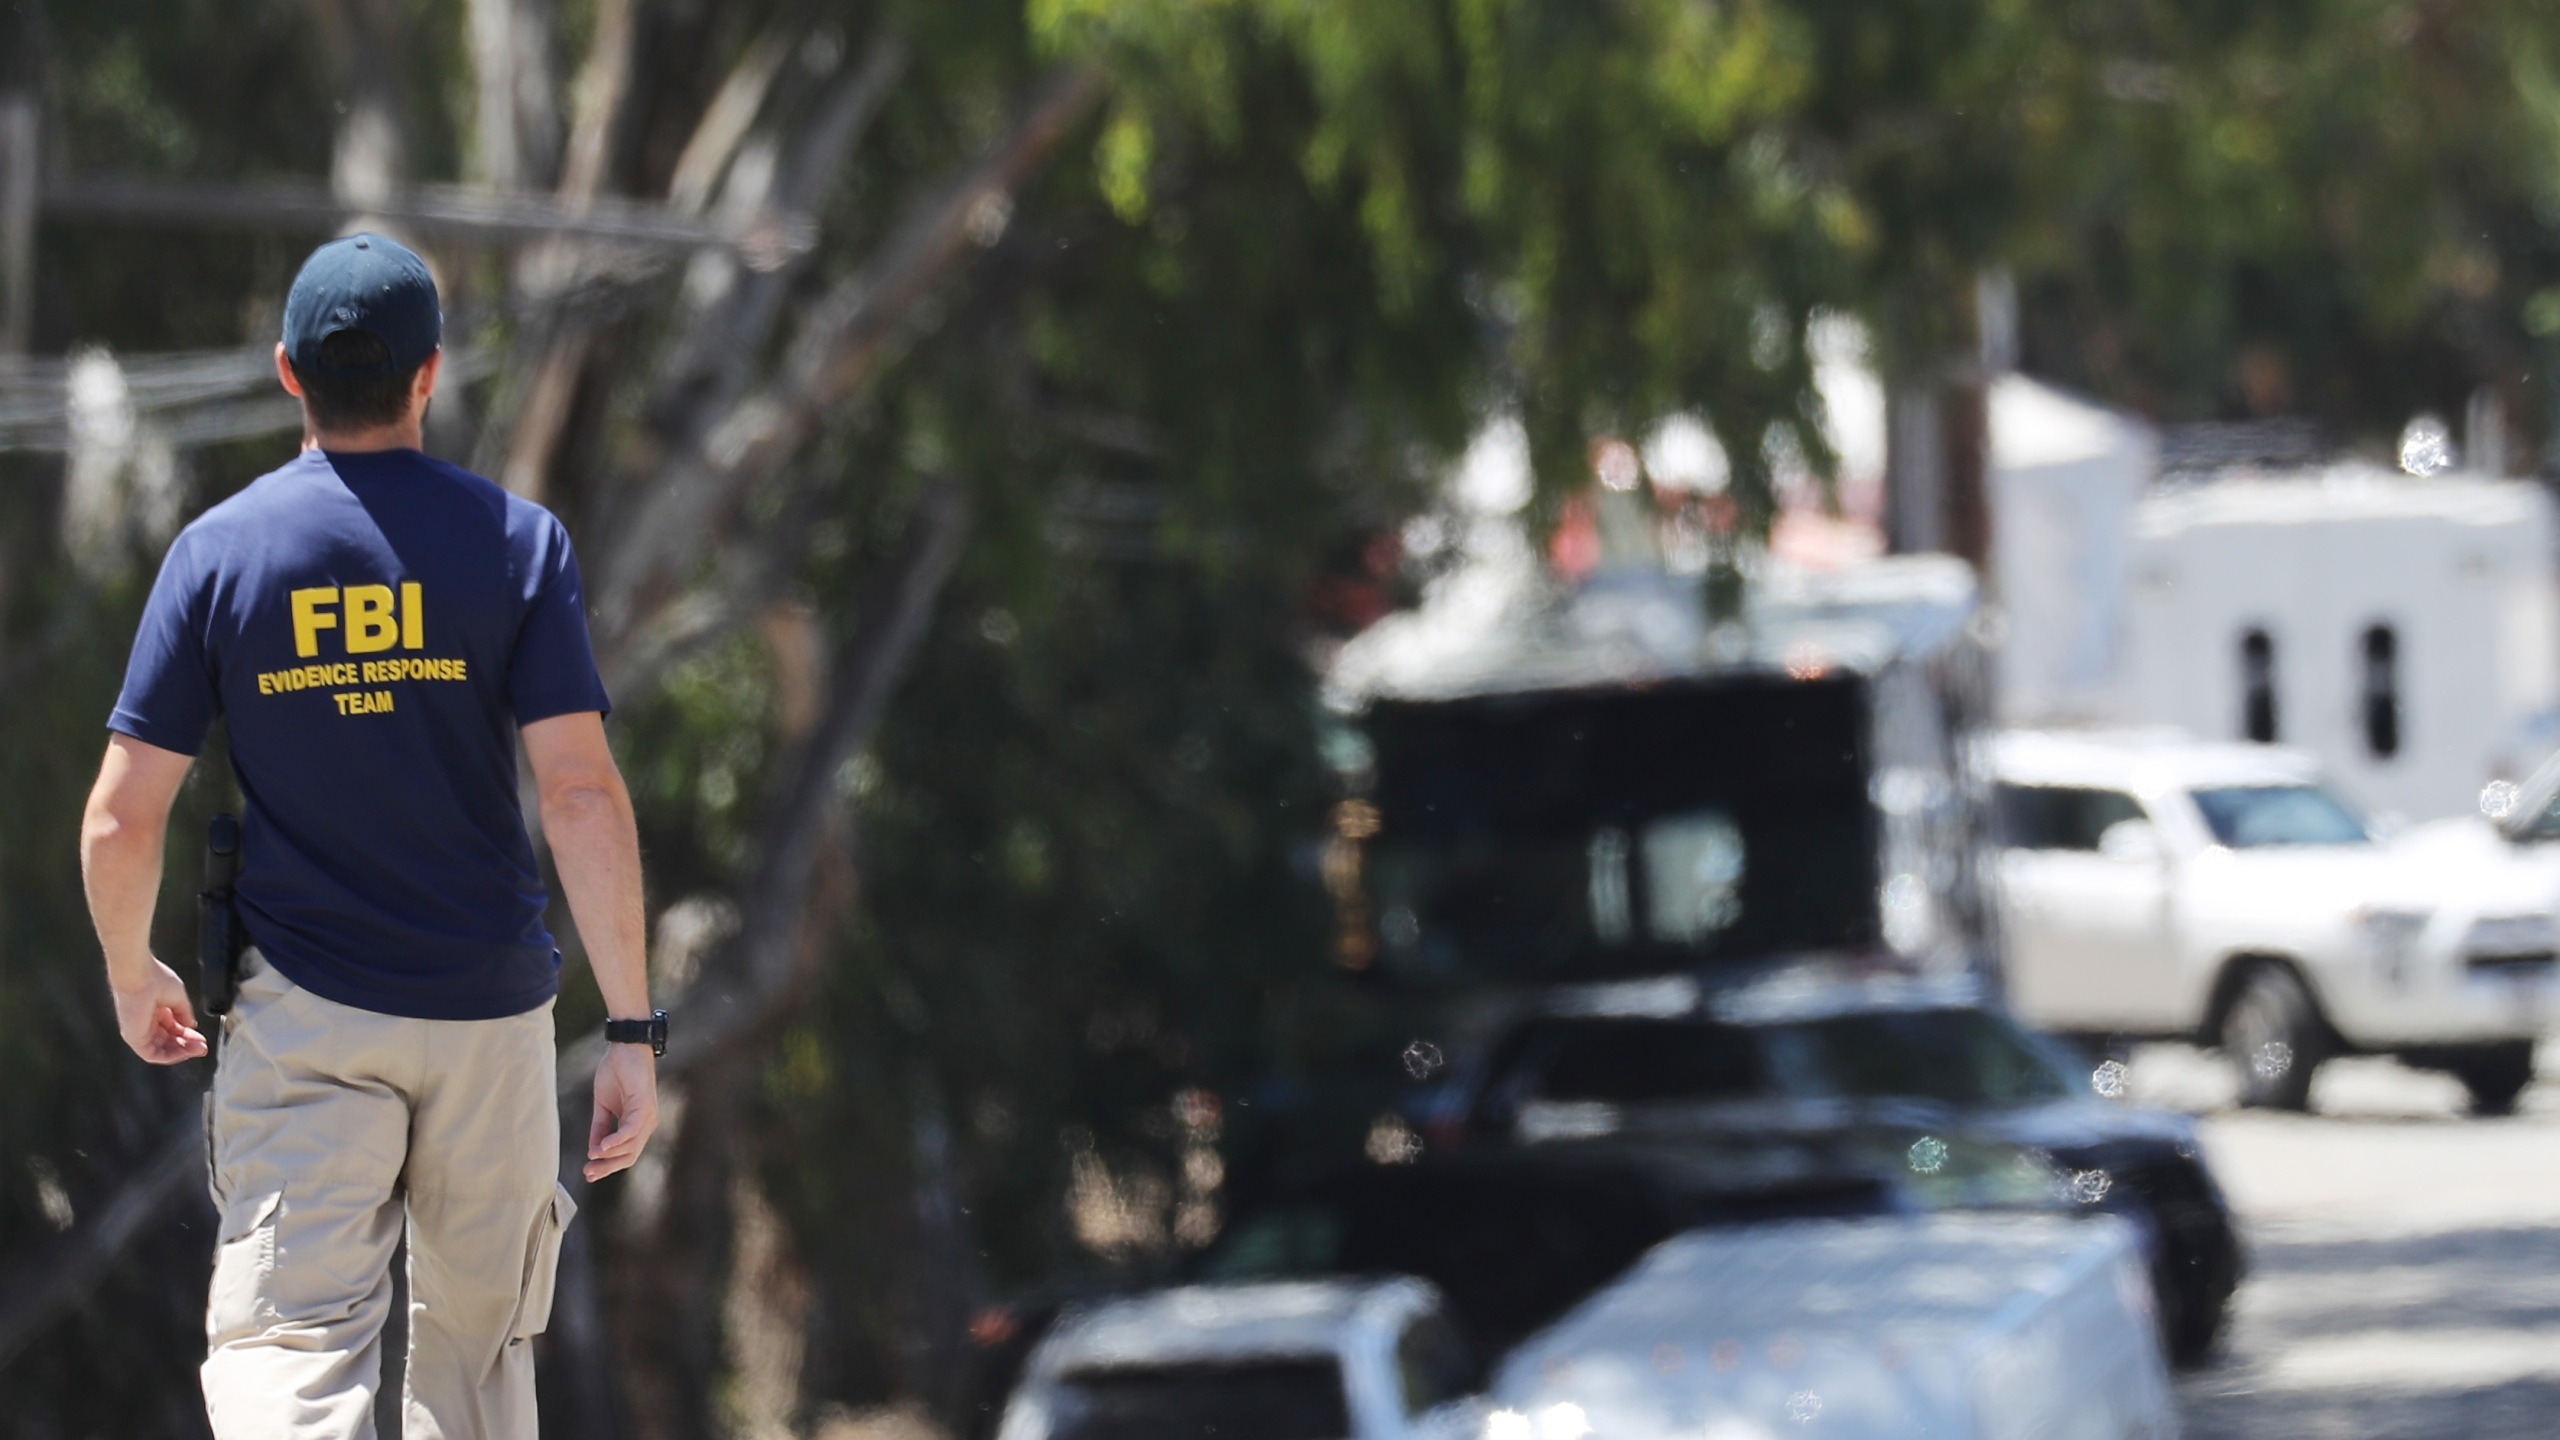 An FBI agent walks toward the site of the Gilroy Garlic Festival after a mass shooting took place there yesterday on July 29, 2019 in Gilroy, California. (Credit: Mario Tama/Getty Images)